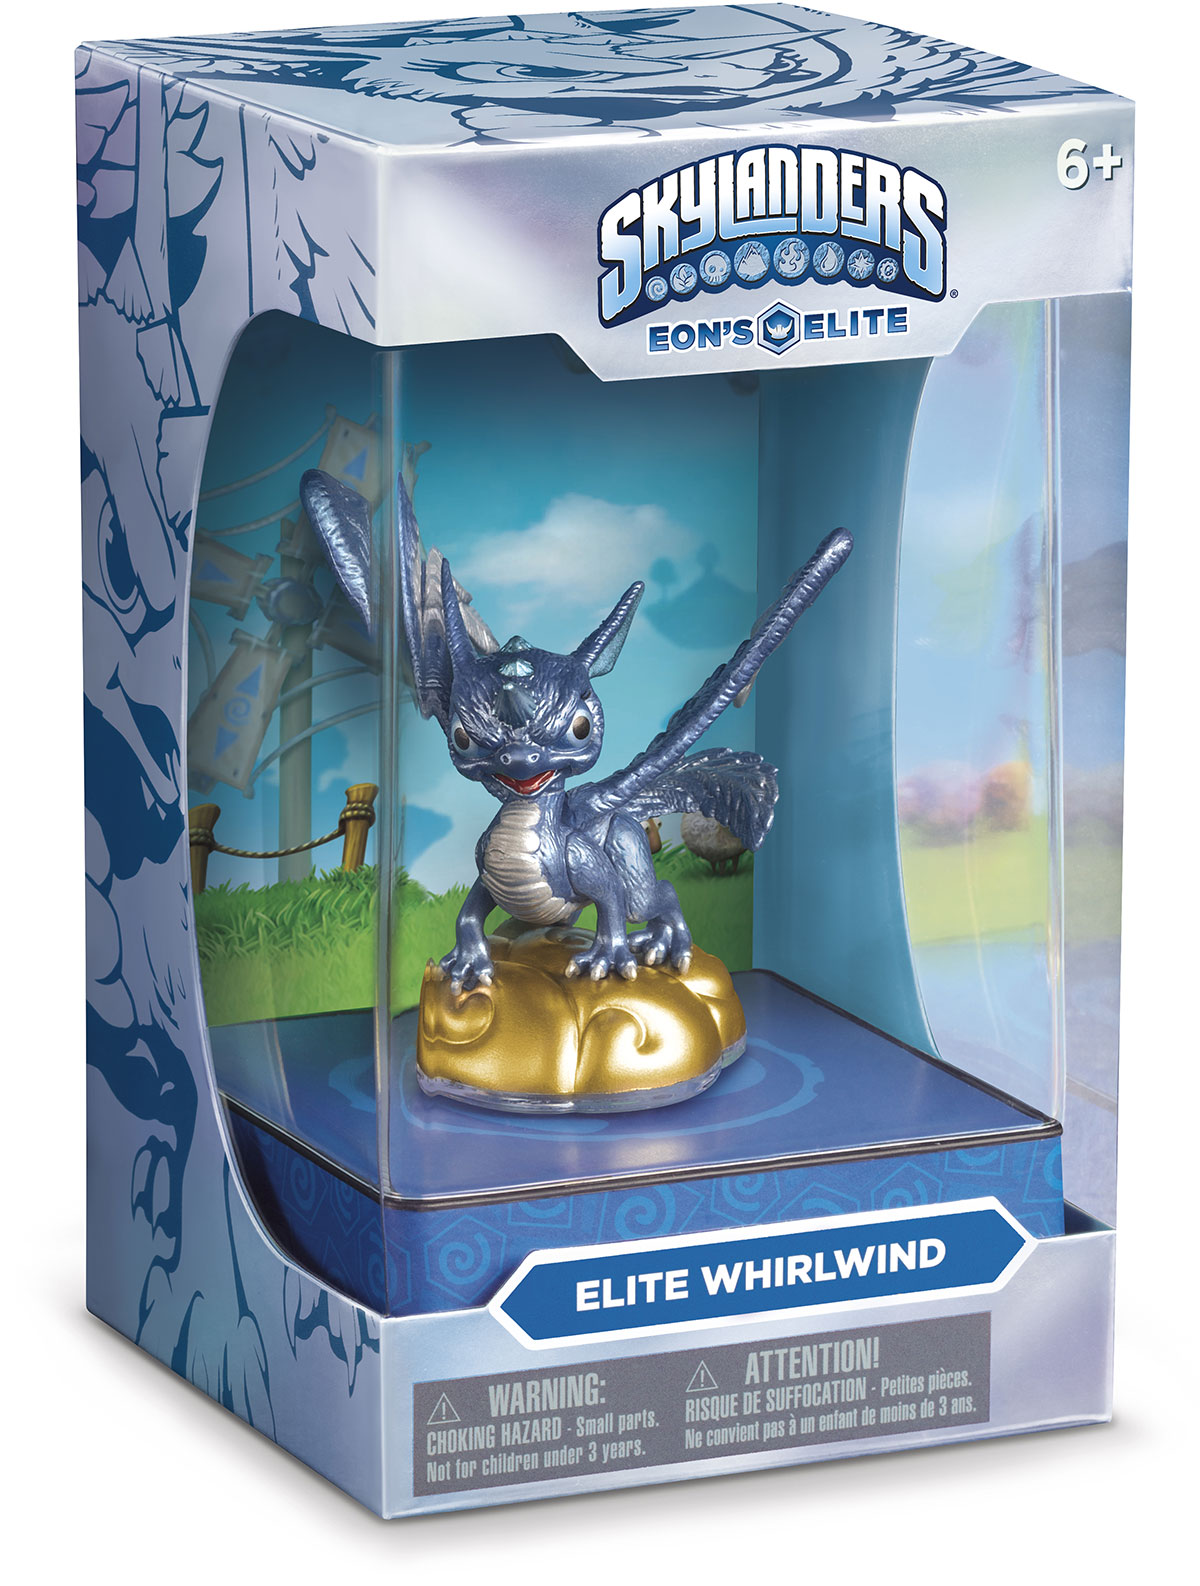 Winterfest Lob-Star Skylander, Latest Eon's Elite Whirlwind and New Merchandise Now Available